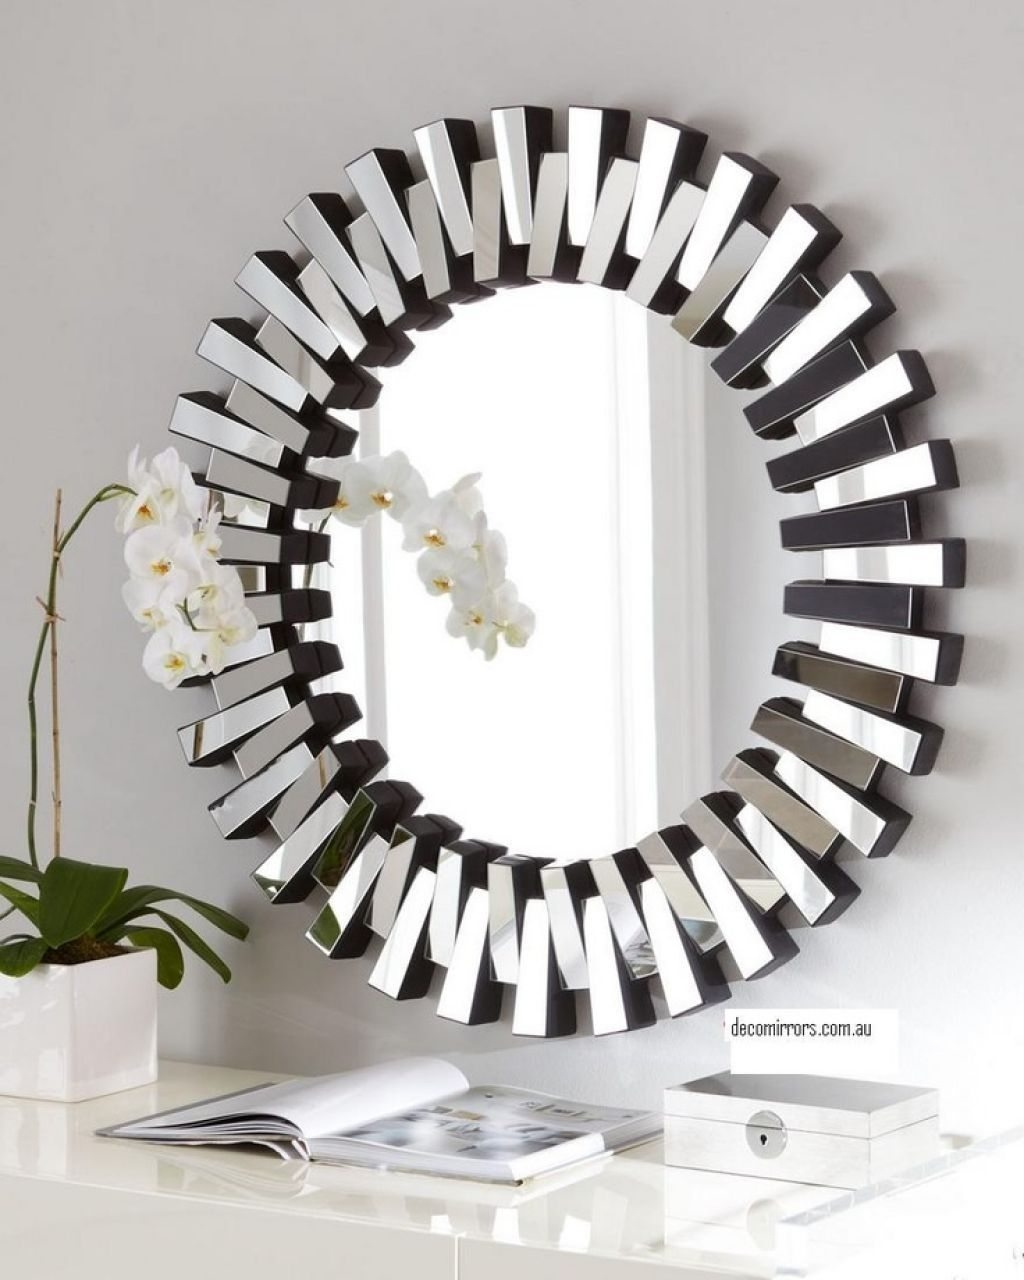 Contemporary Wall Mirrors Using Distinctive Wall Mirrors For With Regard To Contemporary Wall Mirrors (Image 8 of 15)